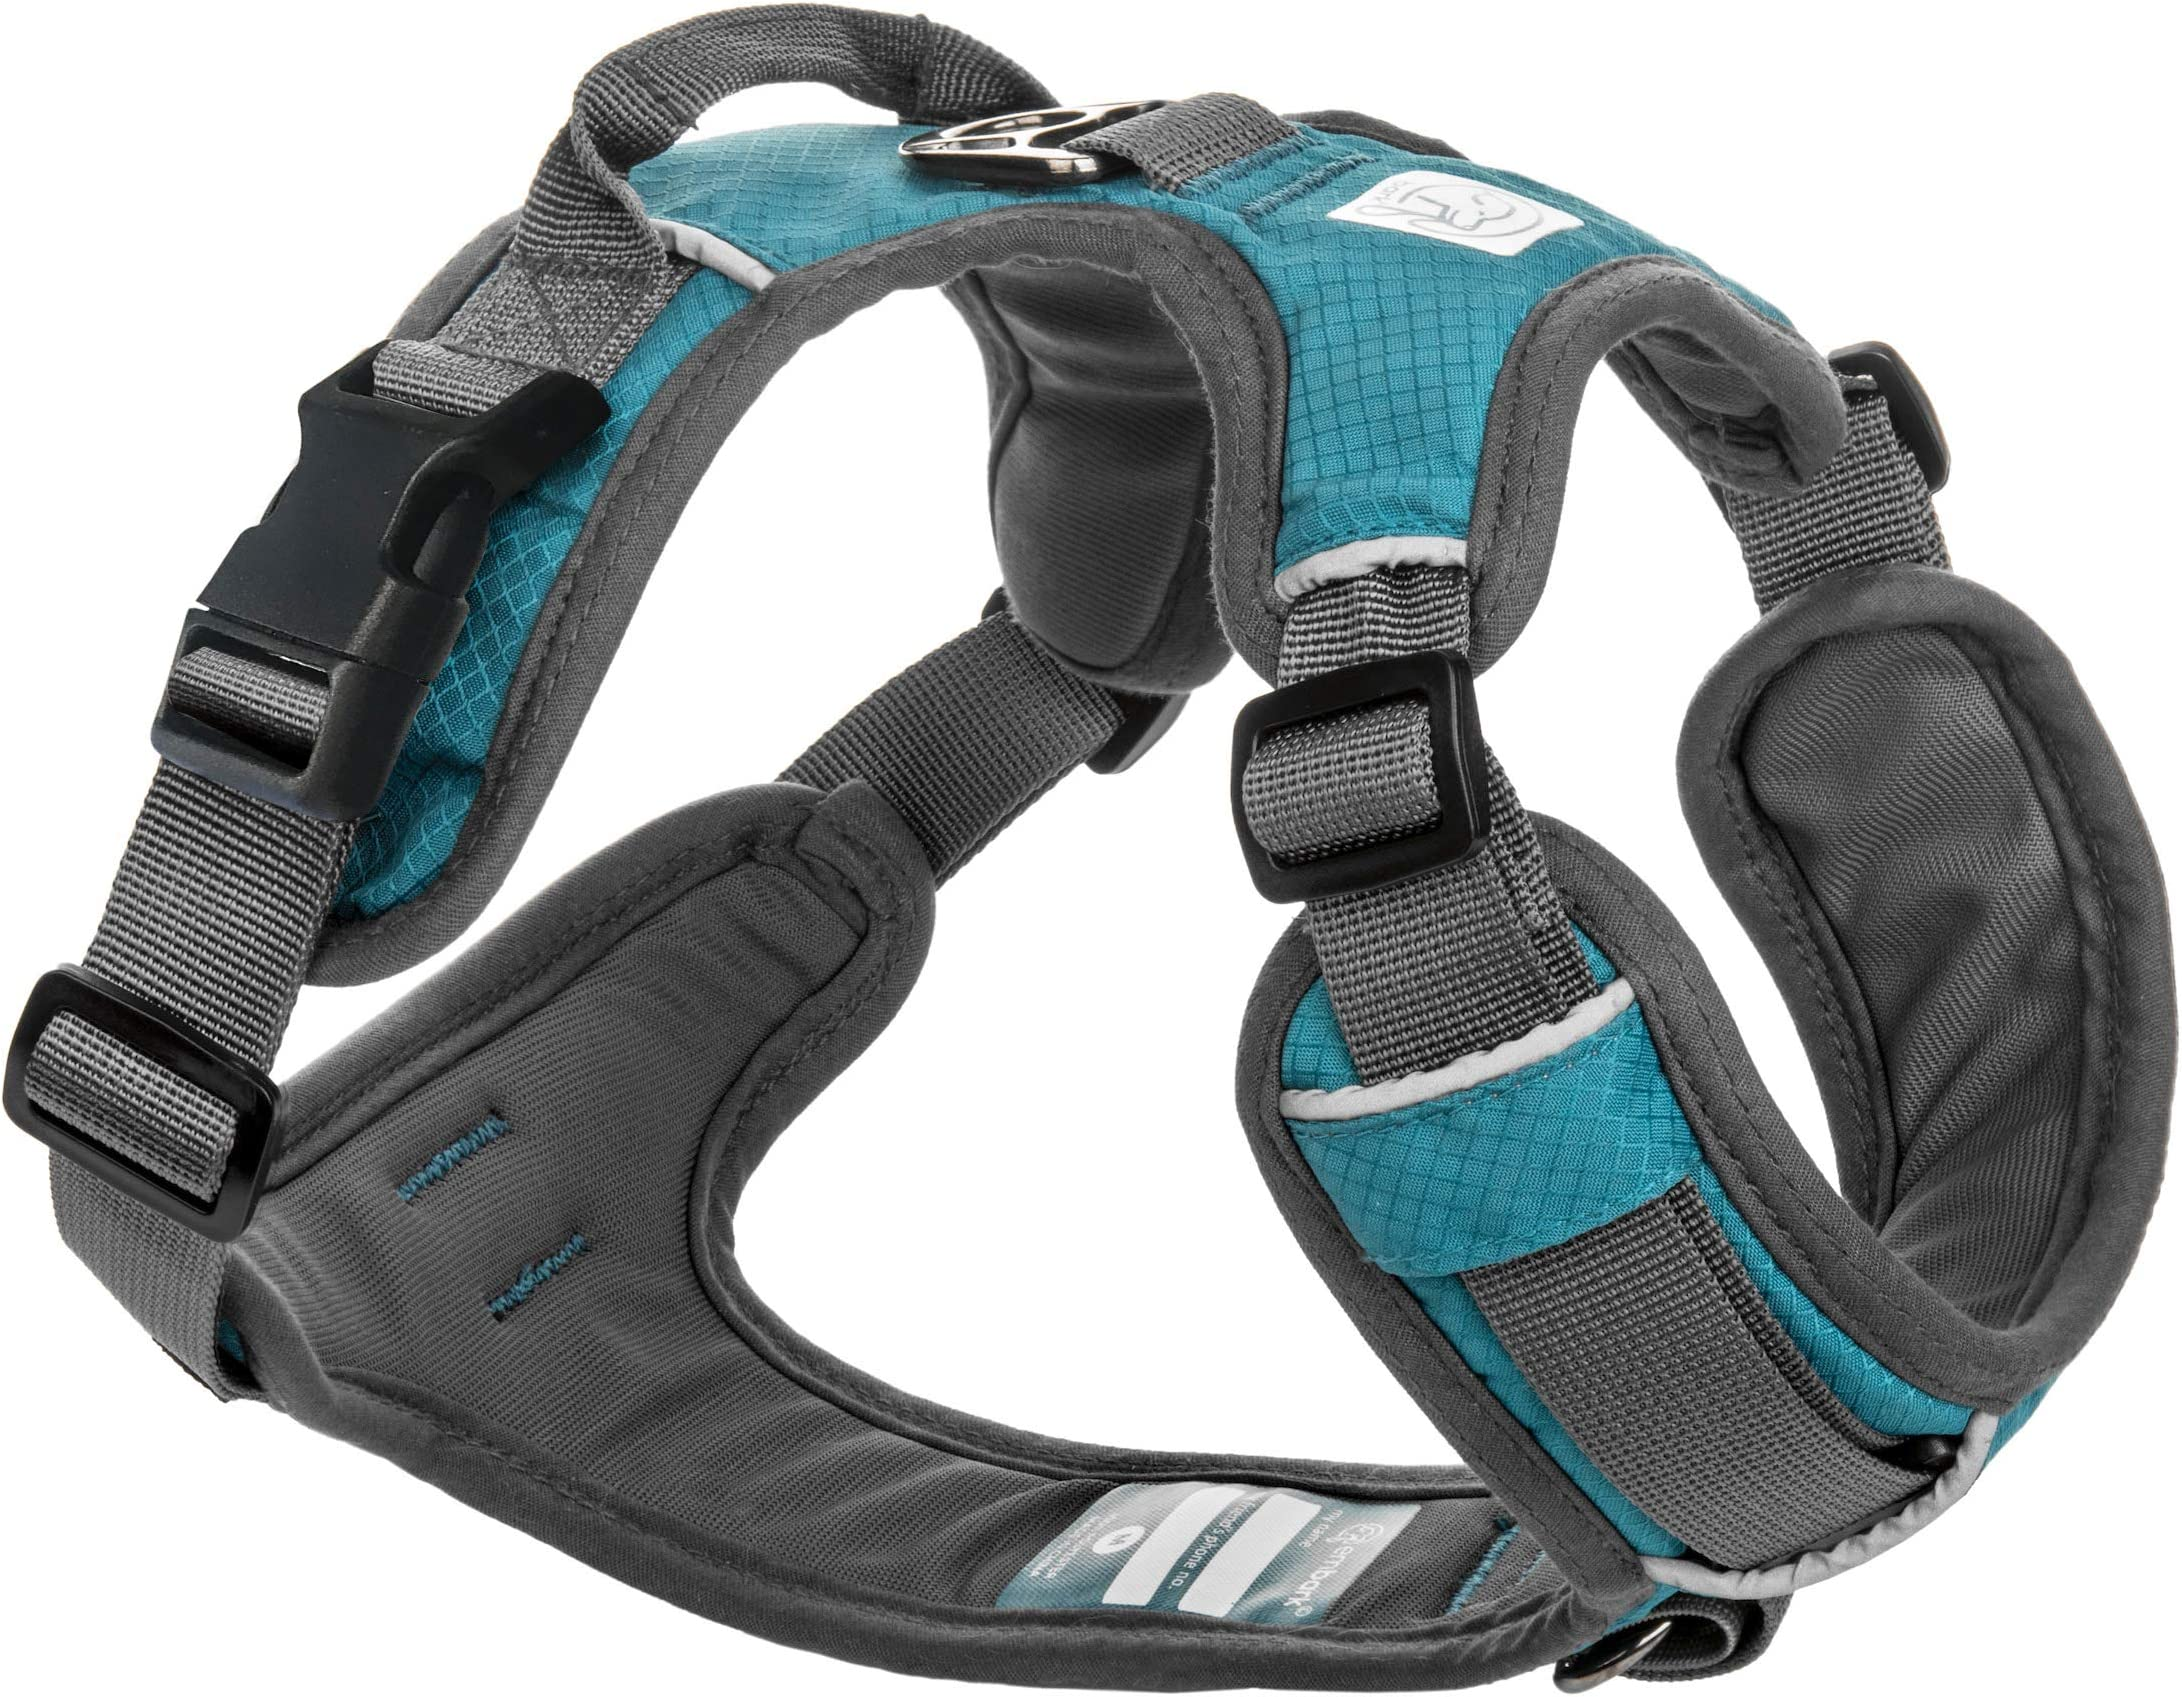 Embark Adventure Dog Harness, Easy On and Off with Front and Back Leash Attachments & Control Handle - No Pull Training, Size Adjustable and Non Choke